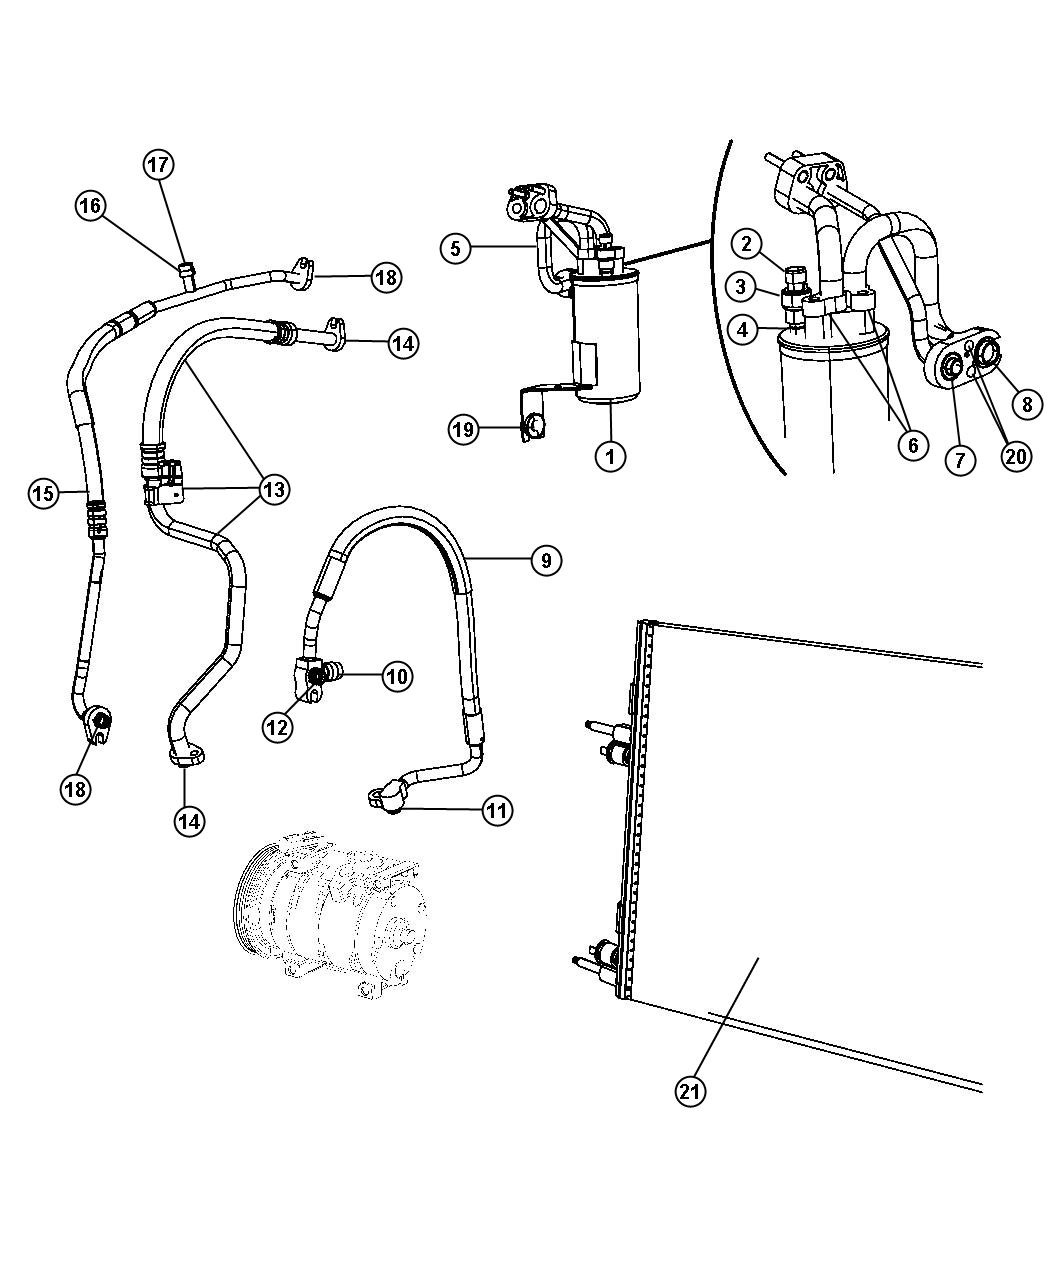 2008 chrysler town and country parts diagram u2013 chrysler